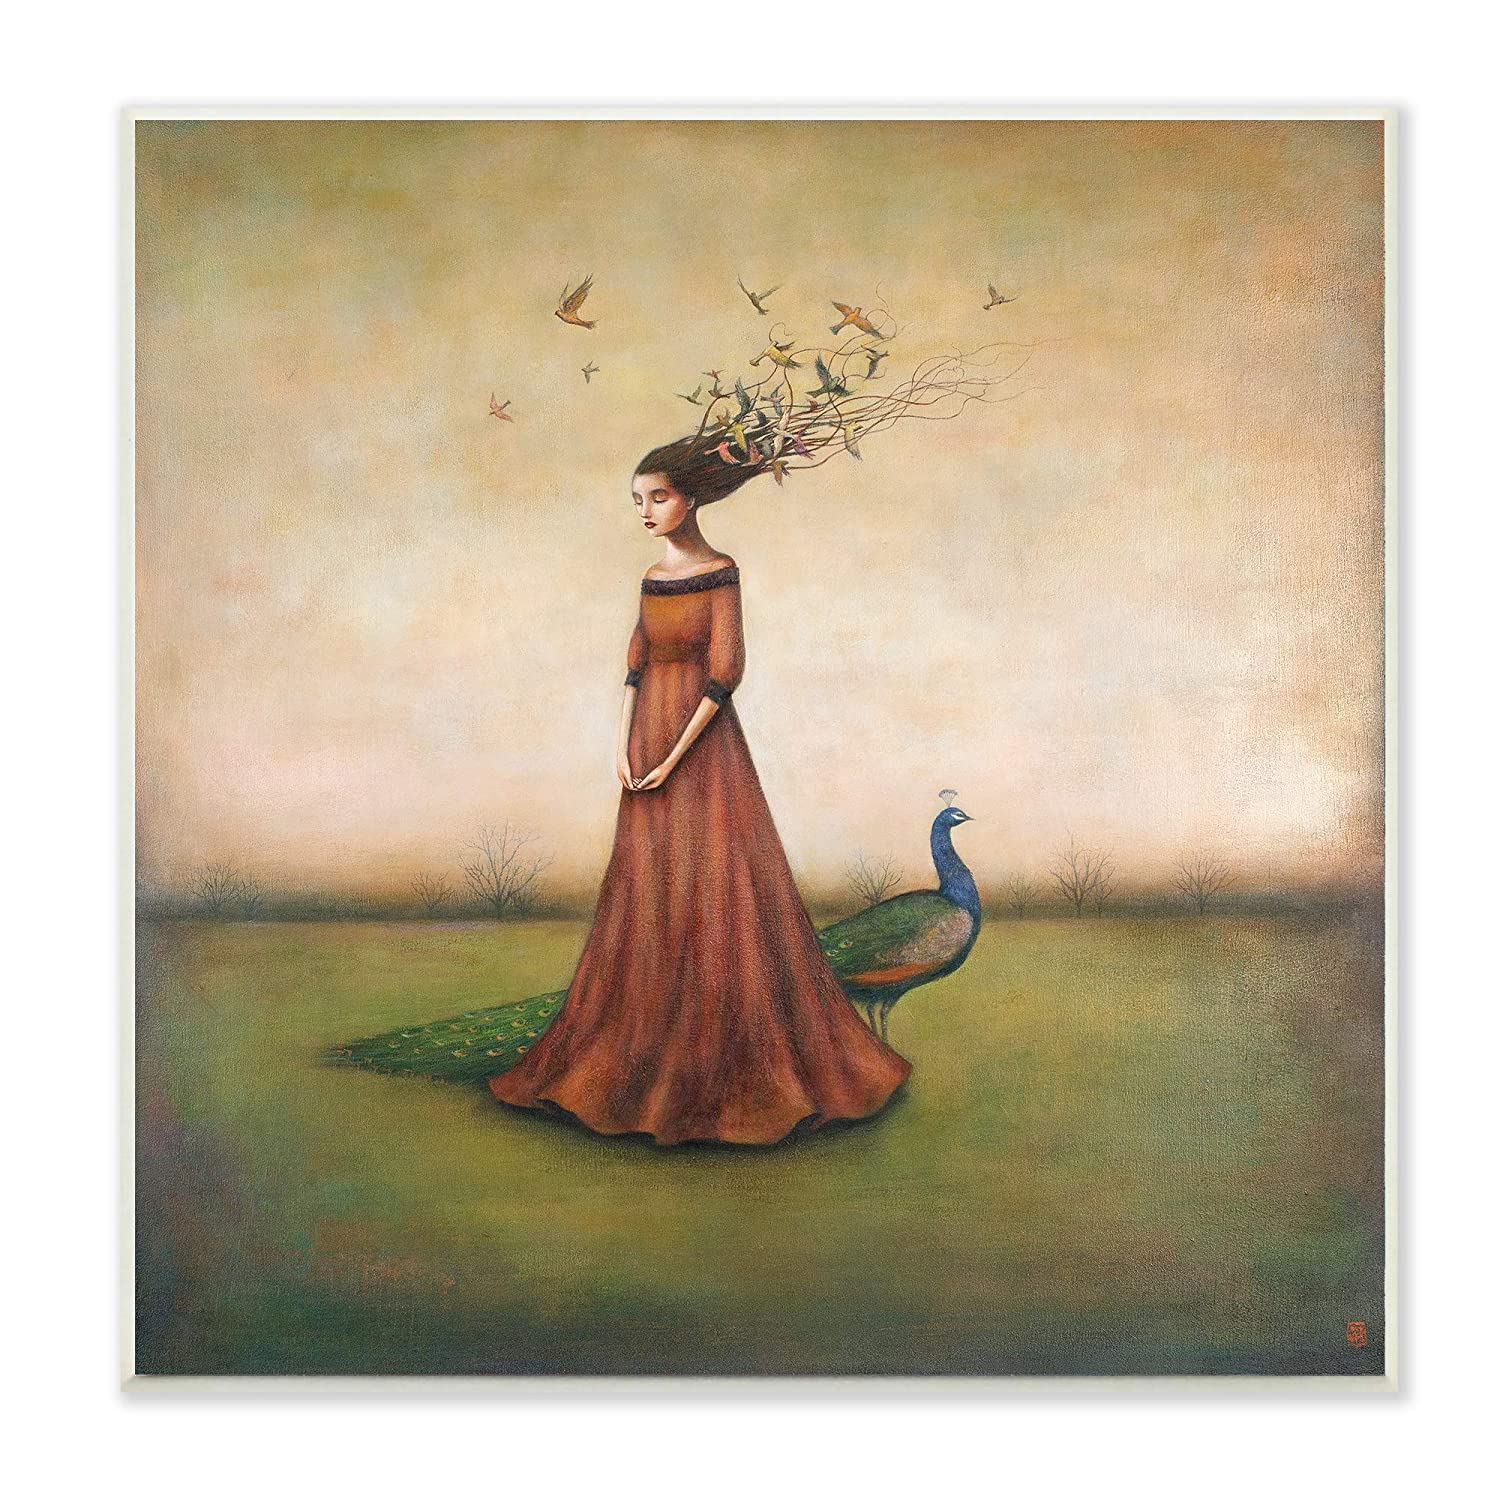 The Stupell Home Decor Beauty and Birds in Her Hair Woman and Peacock Illustration Wall Plaque Art, Multi-Color